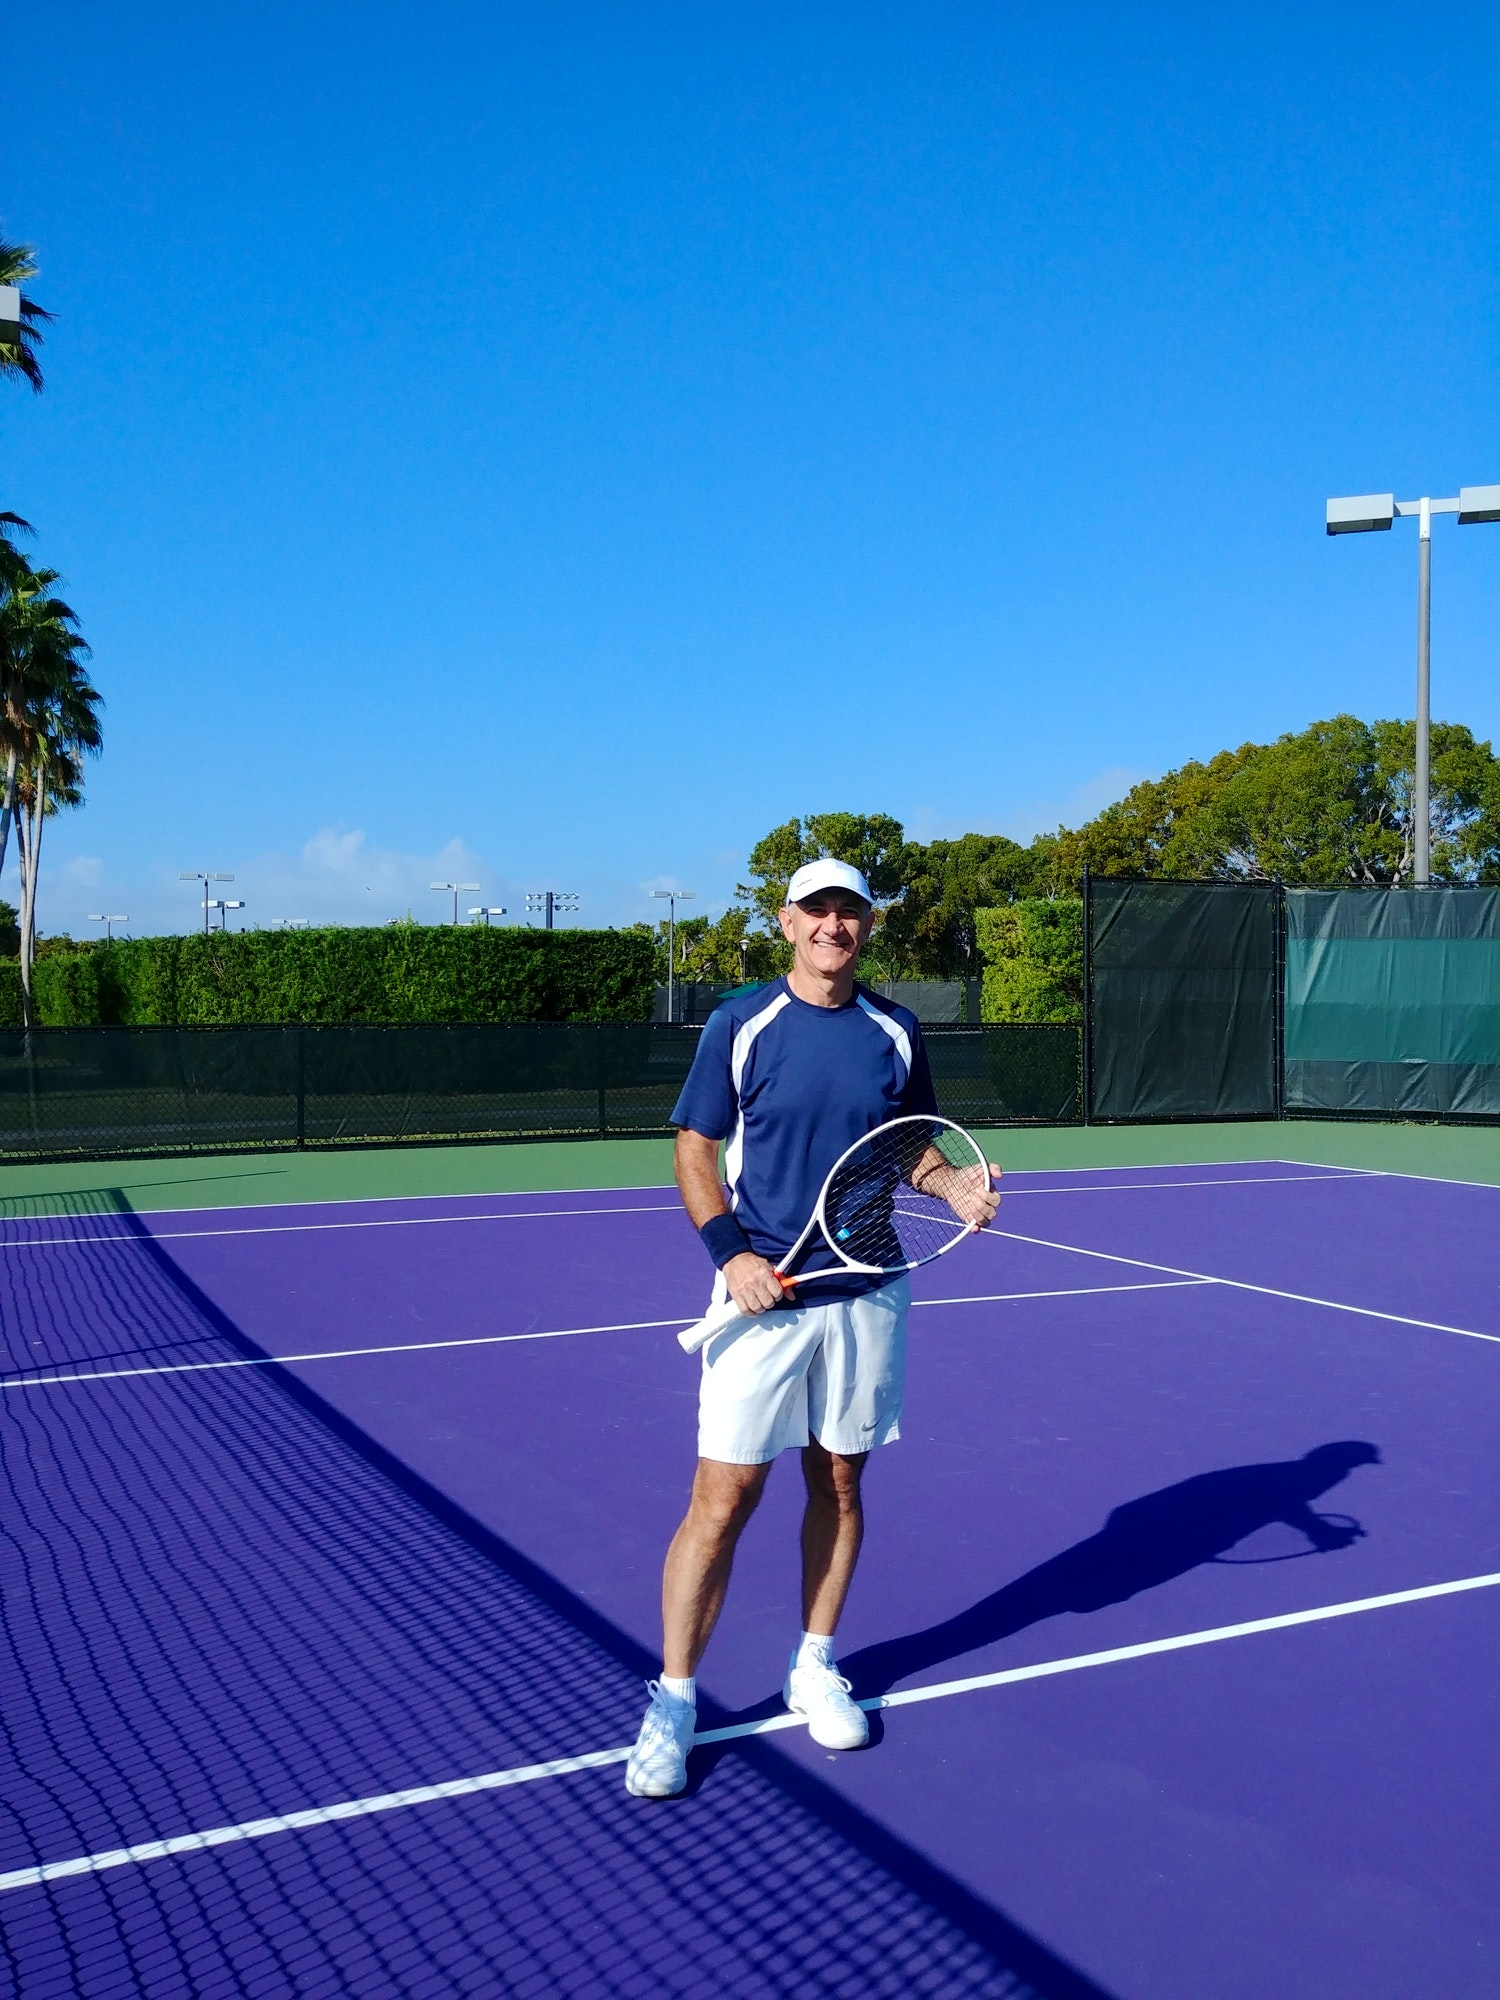 Luis E. teaches tennis lessons in Coconut Creek, FL